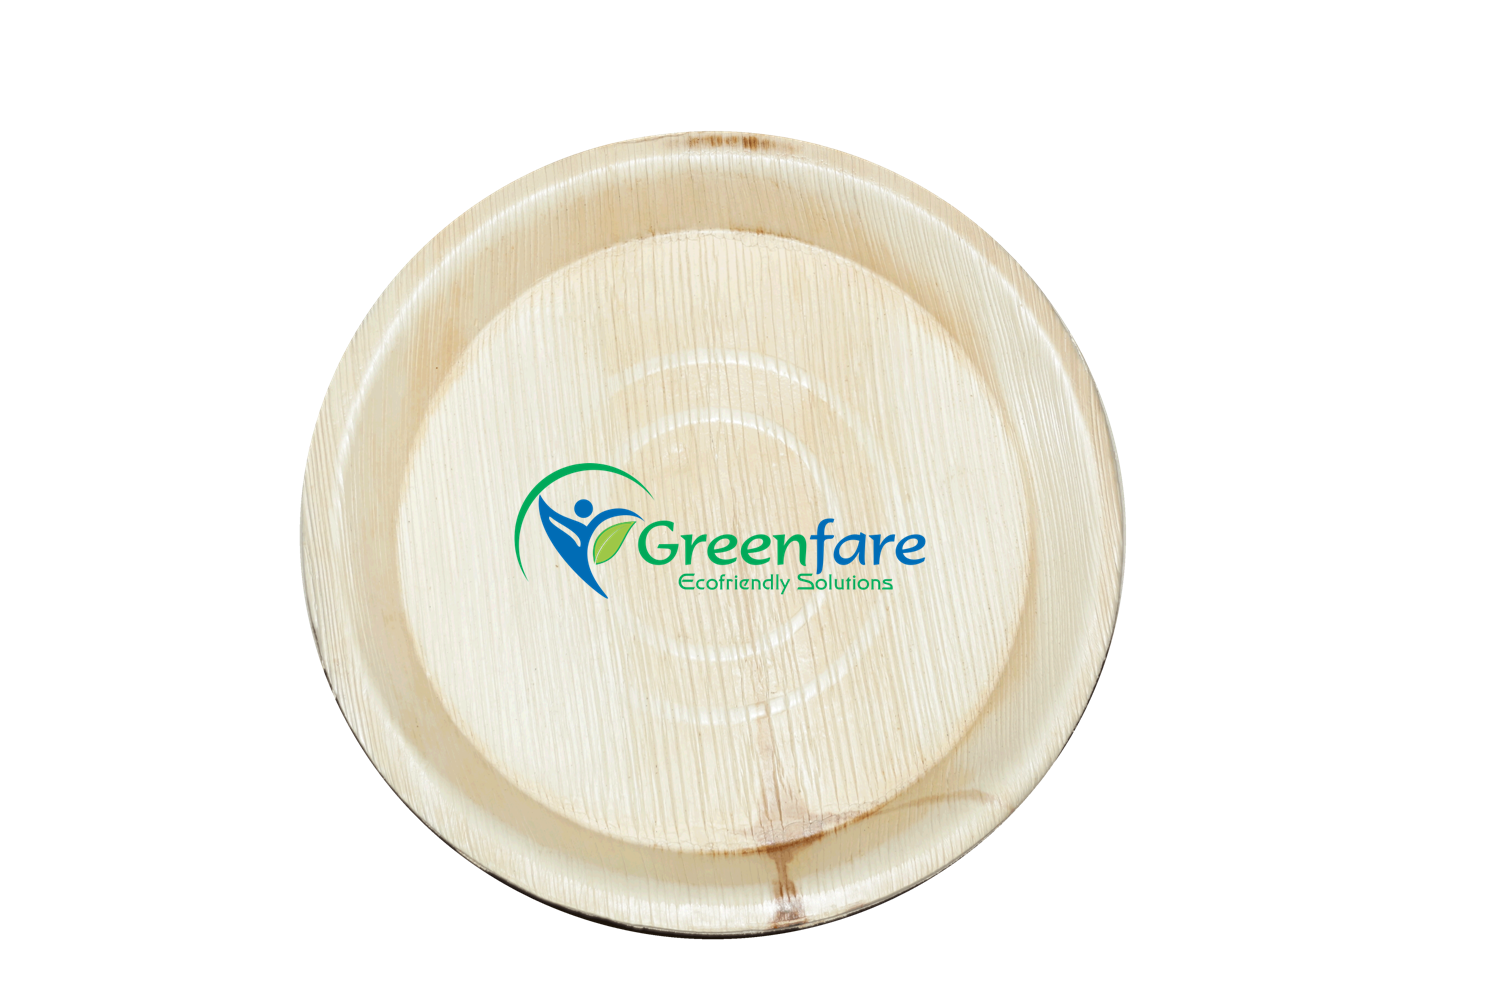 Environment friendly biodegradable Areca Leaf plate